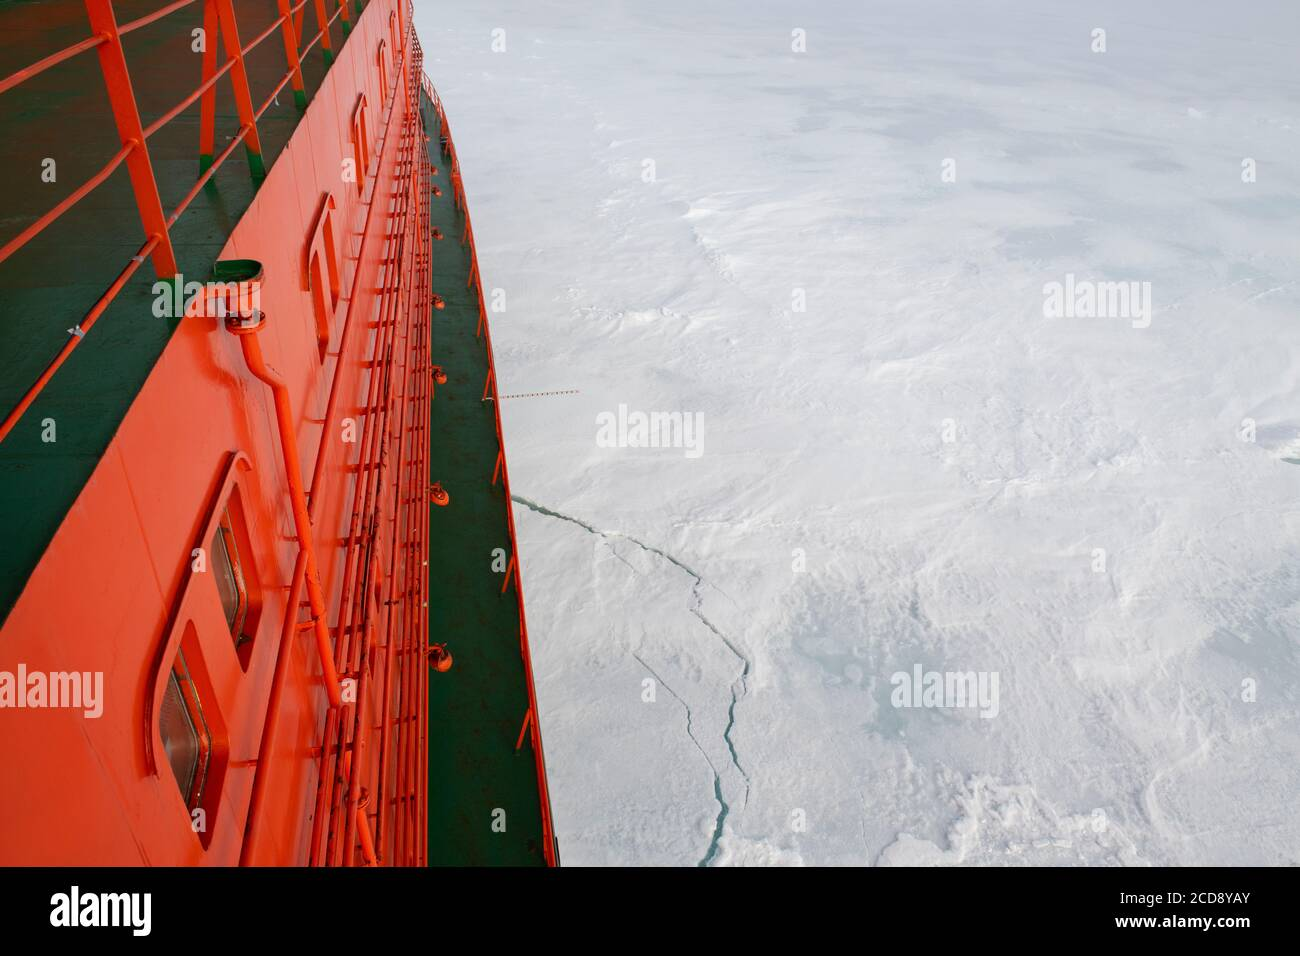 Russia. Russian nuclear icebreaker, 50 Years of Victory breaking through the pack ice in the High Arctic at 85.6 degrees north. Stock Photo